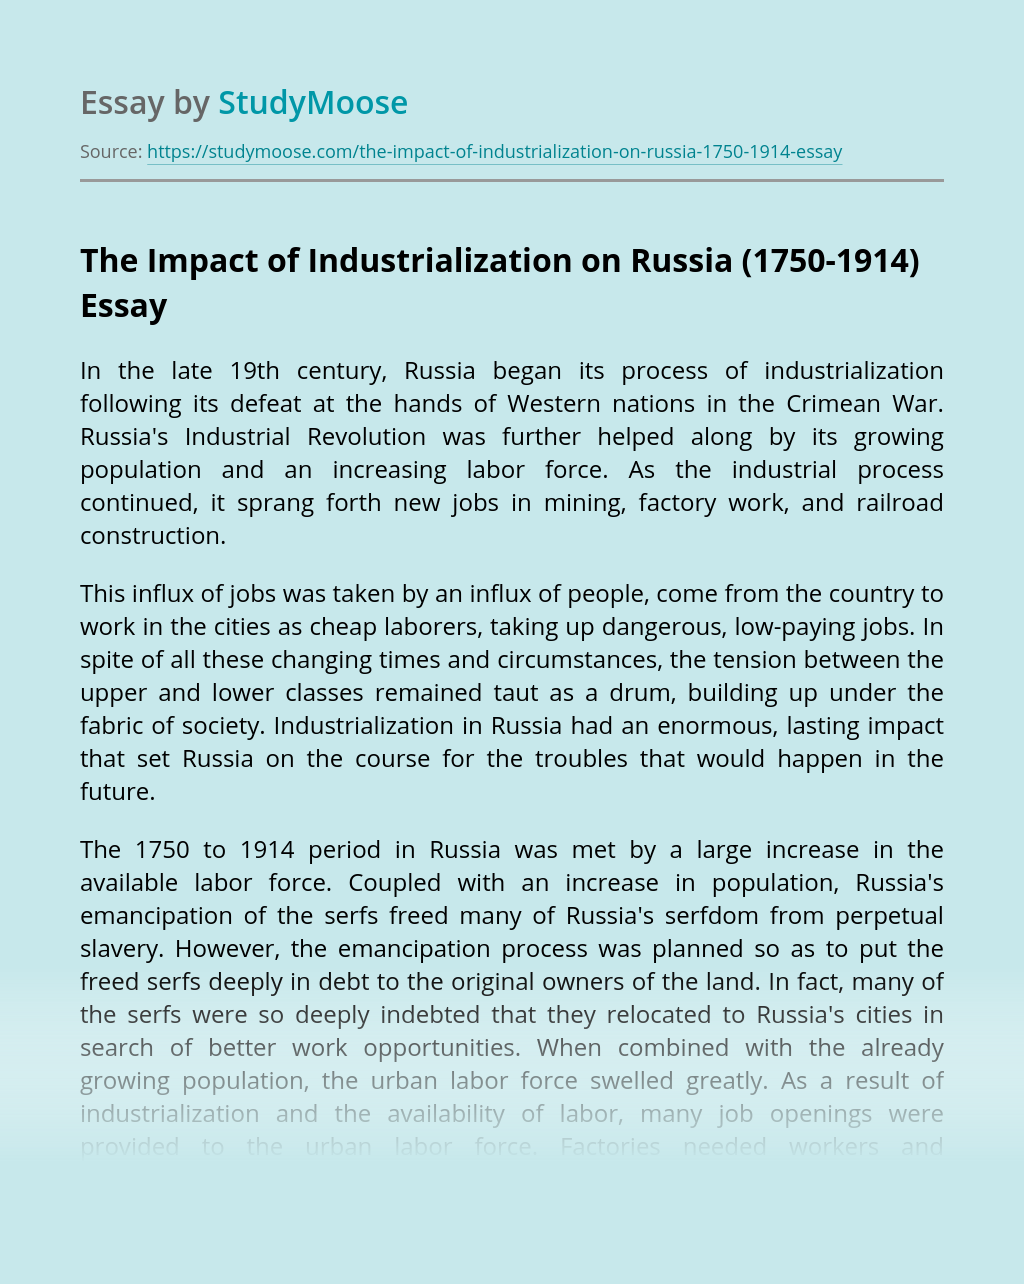 The Impact of Industrialization on Russia (1750-1914)